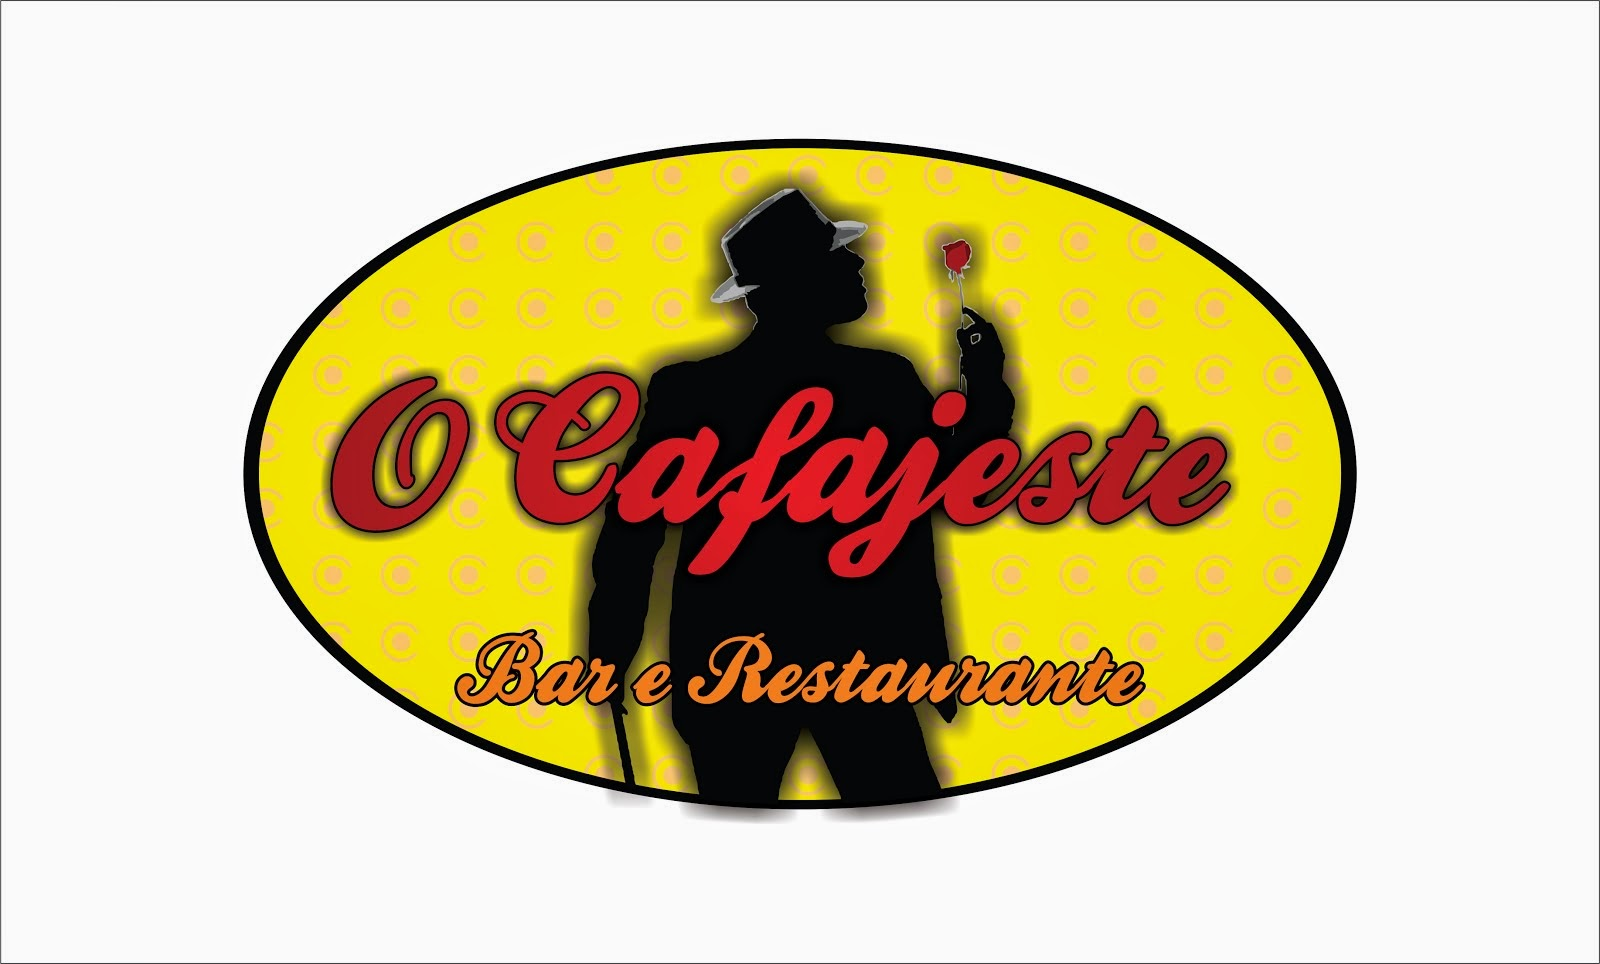 Bar e Restaurante O CAFAJESTE